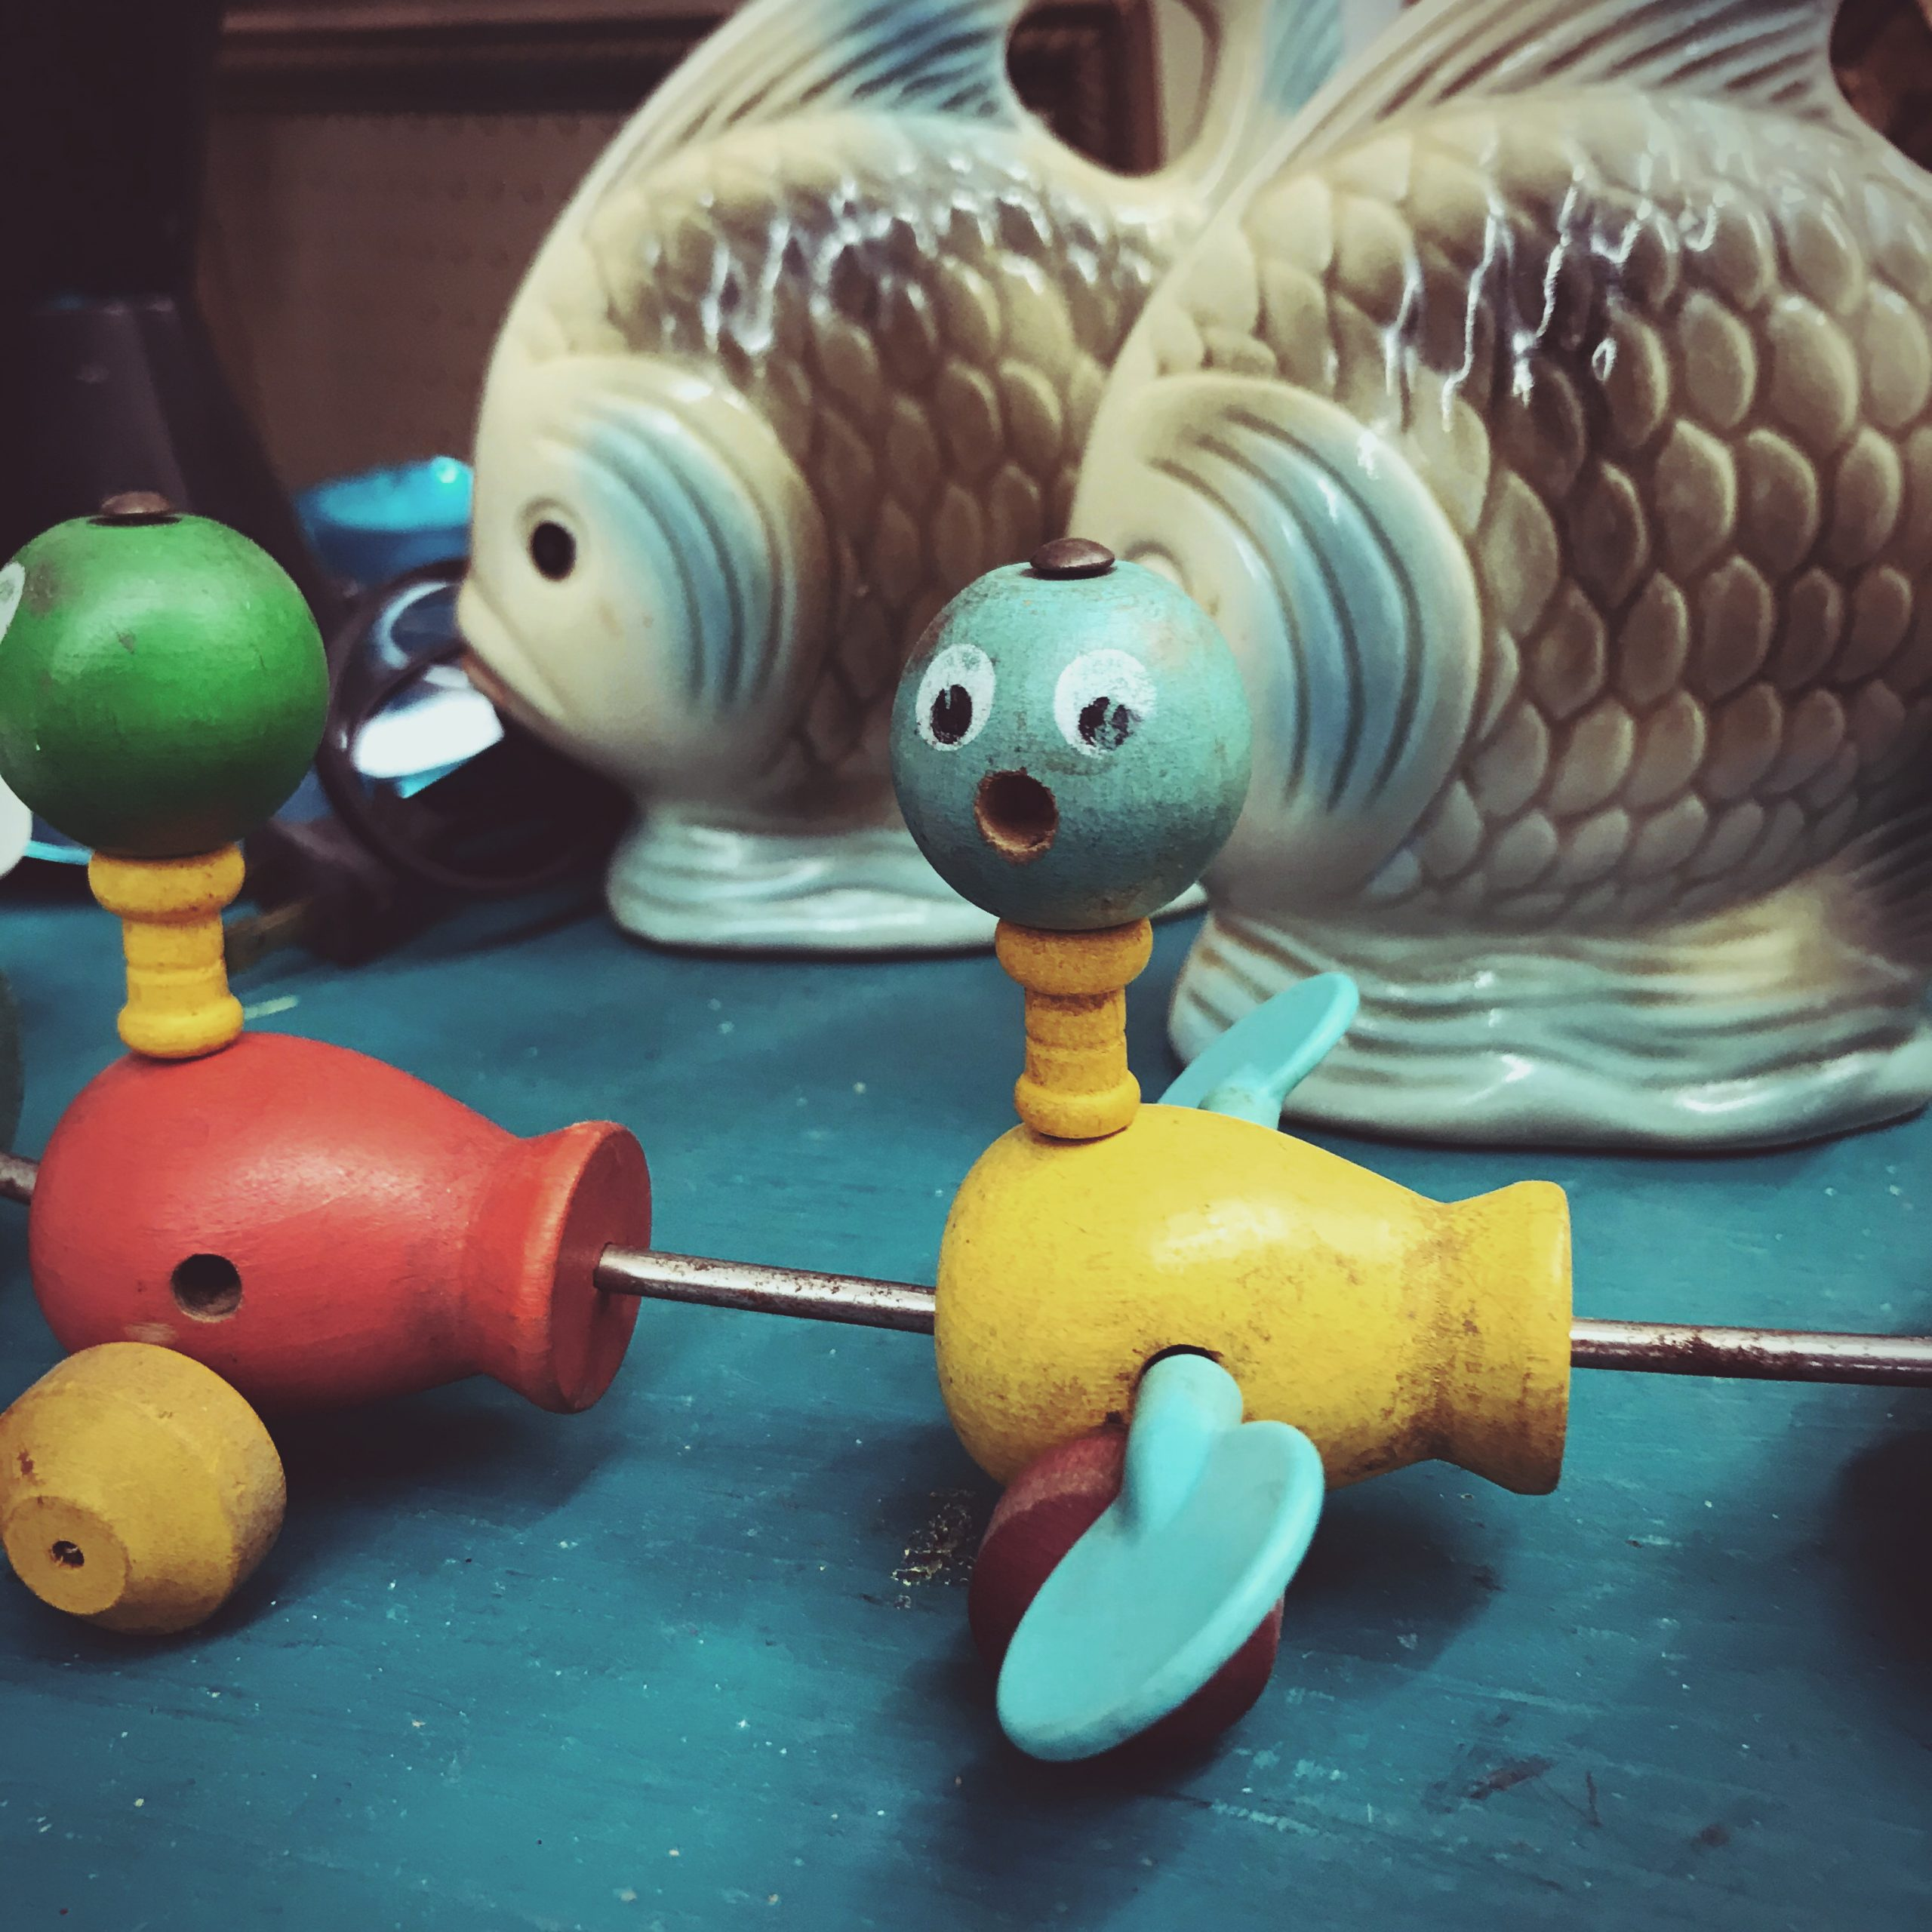 Old Toys // 2020 Copyright Meghan Tutolo